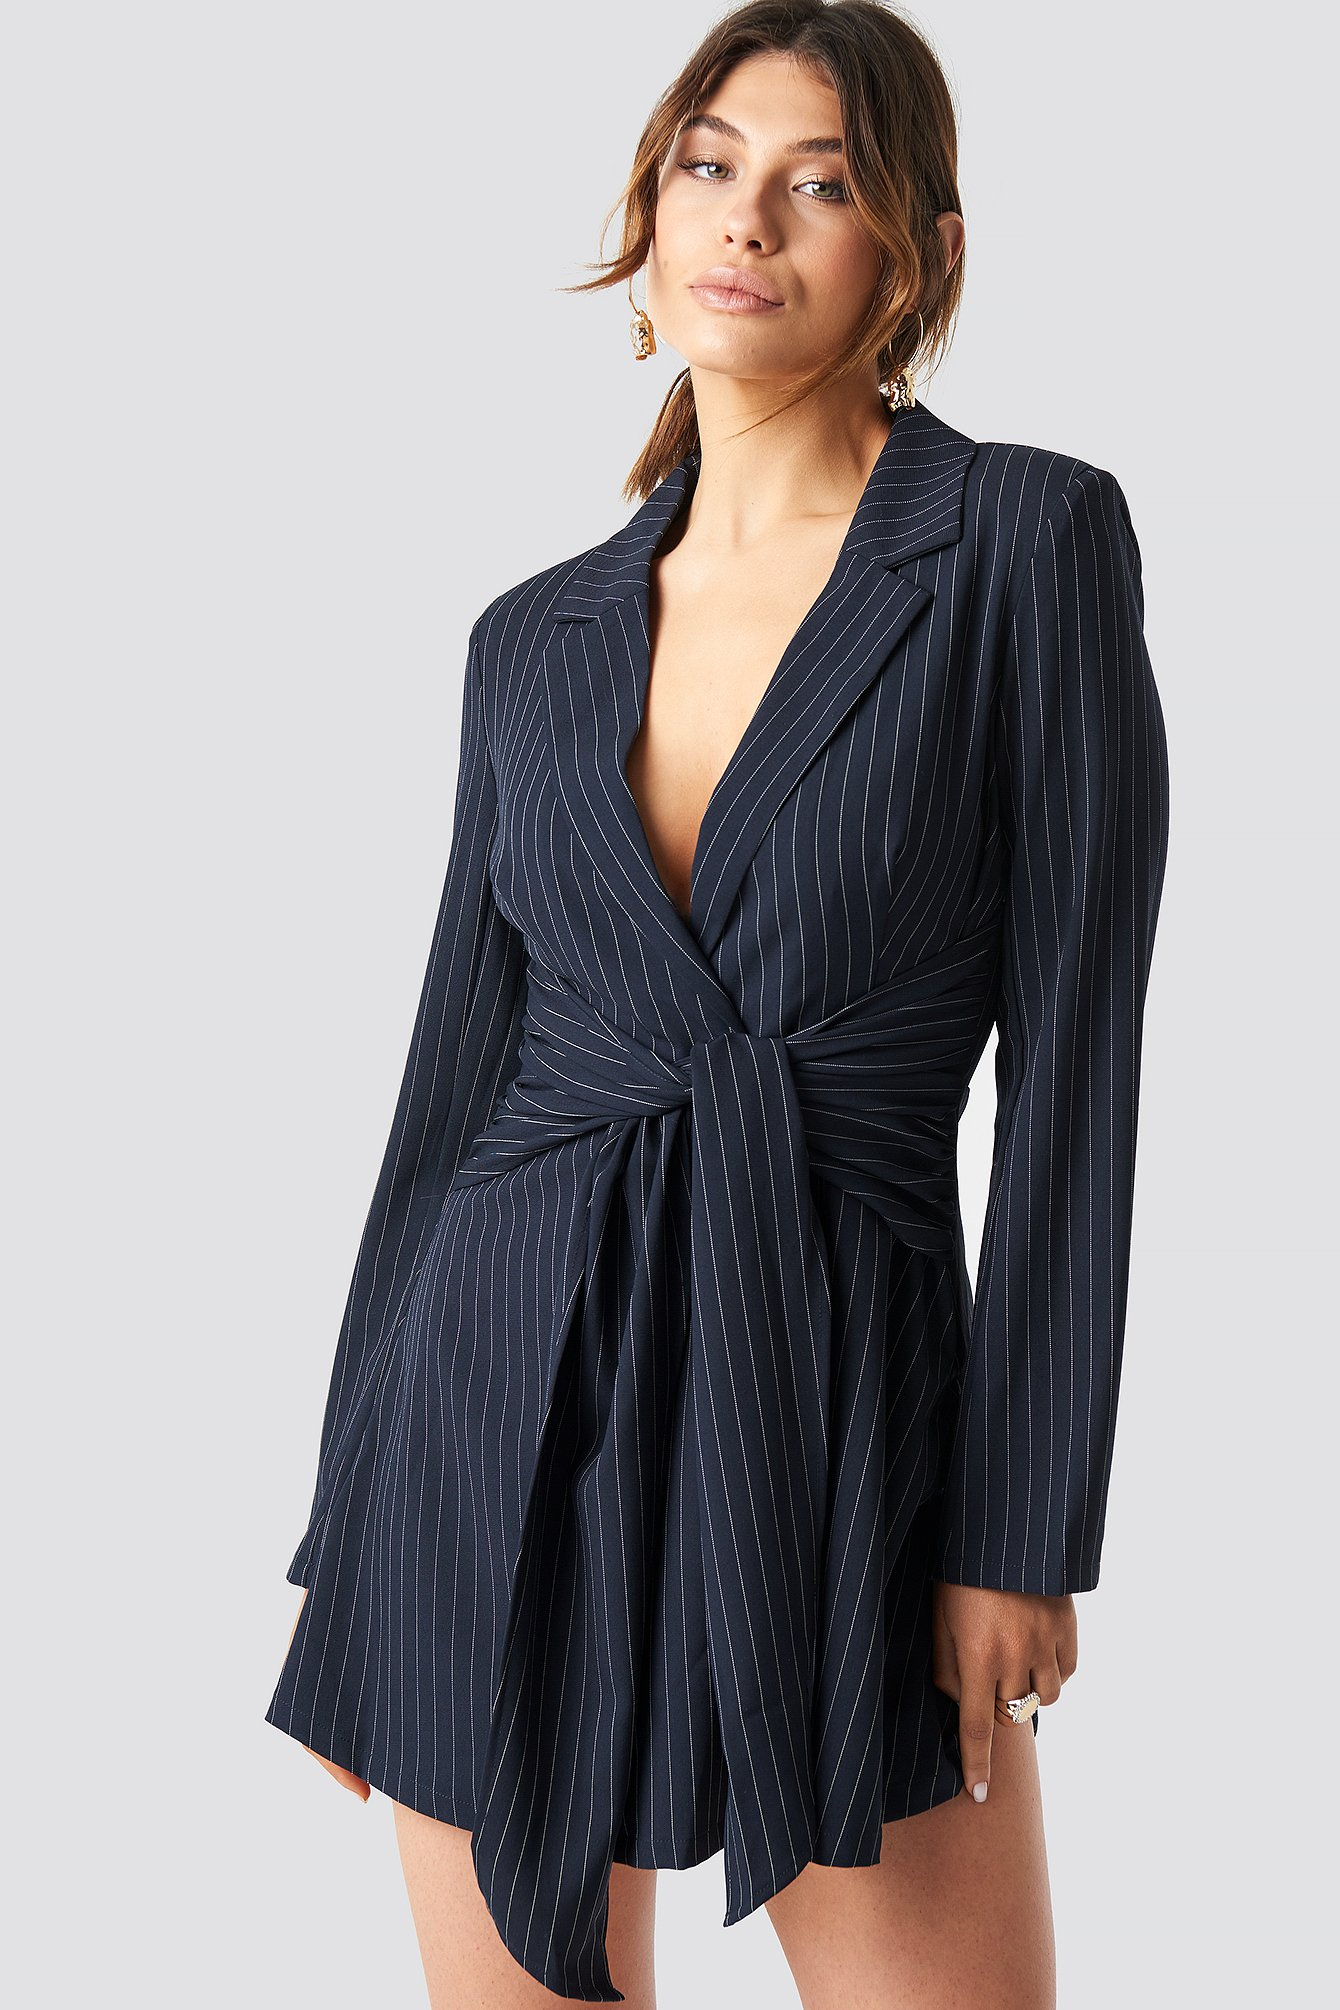 milena karl x na-kd -  Pinstripe Knot Mini Dress - Blue